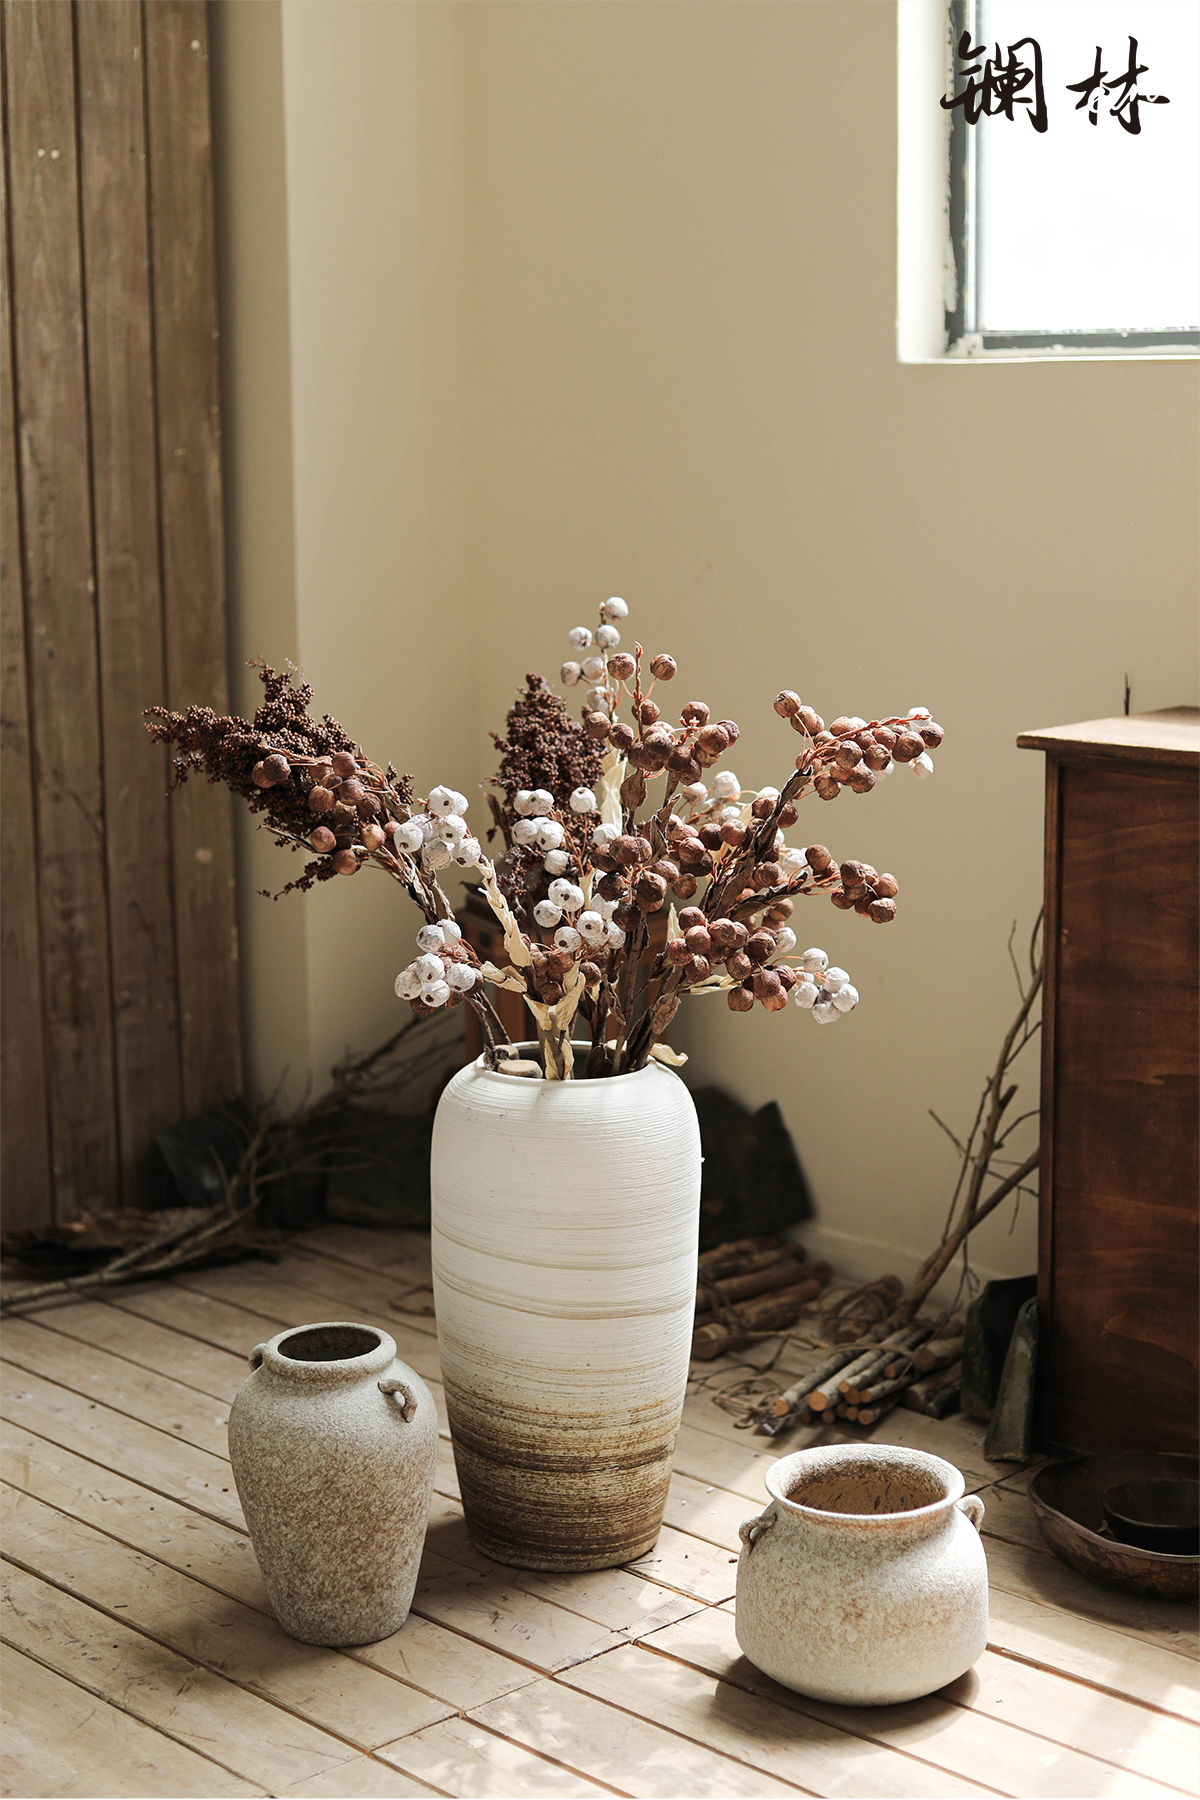 The French are dried flowers plant furnishing articles sitting room adornment vase ceramic bottle hotel home stay buddhist fancy wabi-sabi wind restoring ancient ways